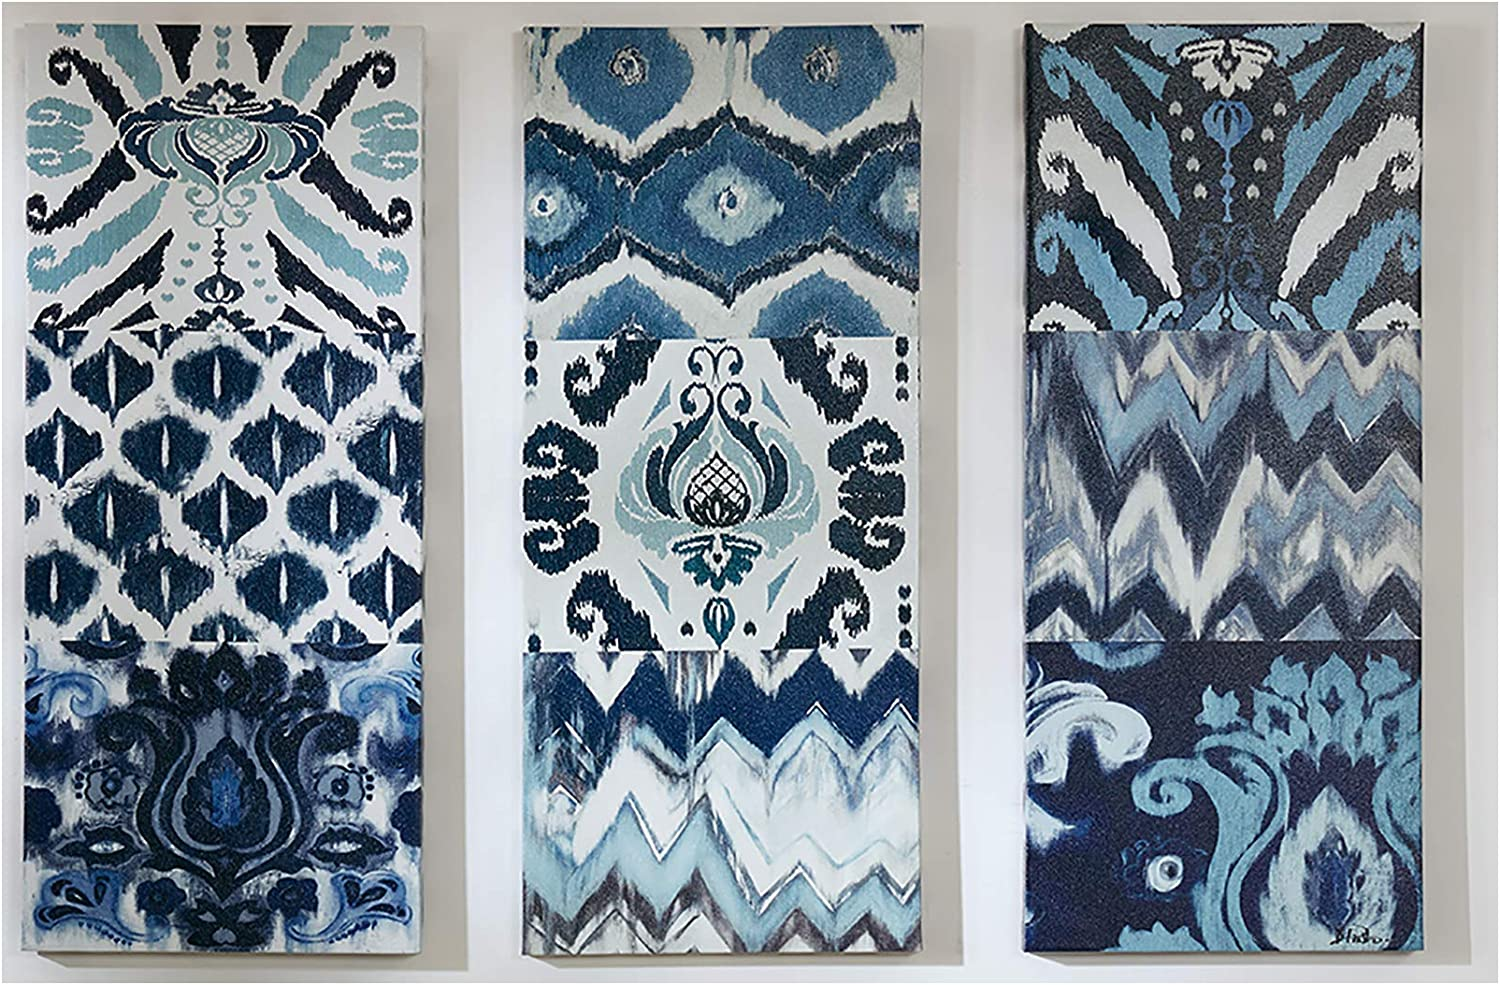 Madison Park Flourish Ikat Wall Art - Canvas Gel Coated Bohemian Painting Home Décor, Abstract Stretched 3 Piece Set Canvas Painting for Living Room, Easy to Hang Deco Box, Blue MP95C-0013